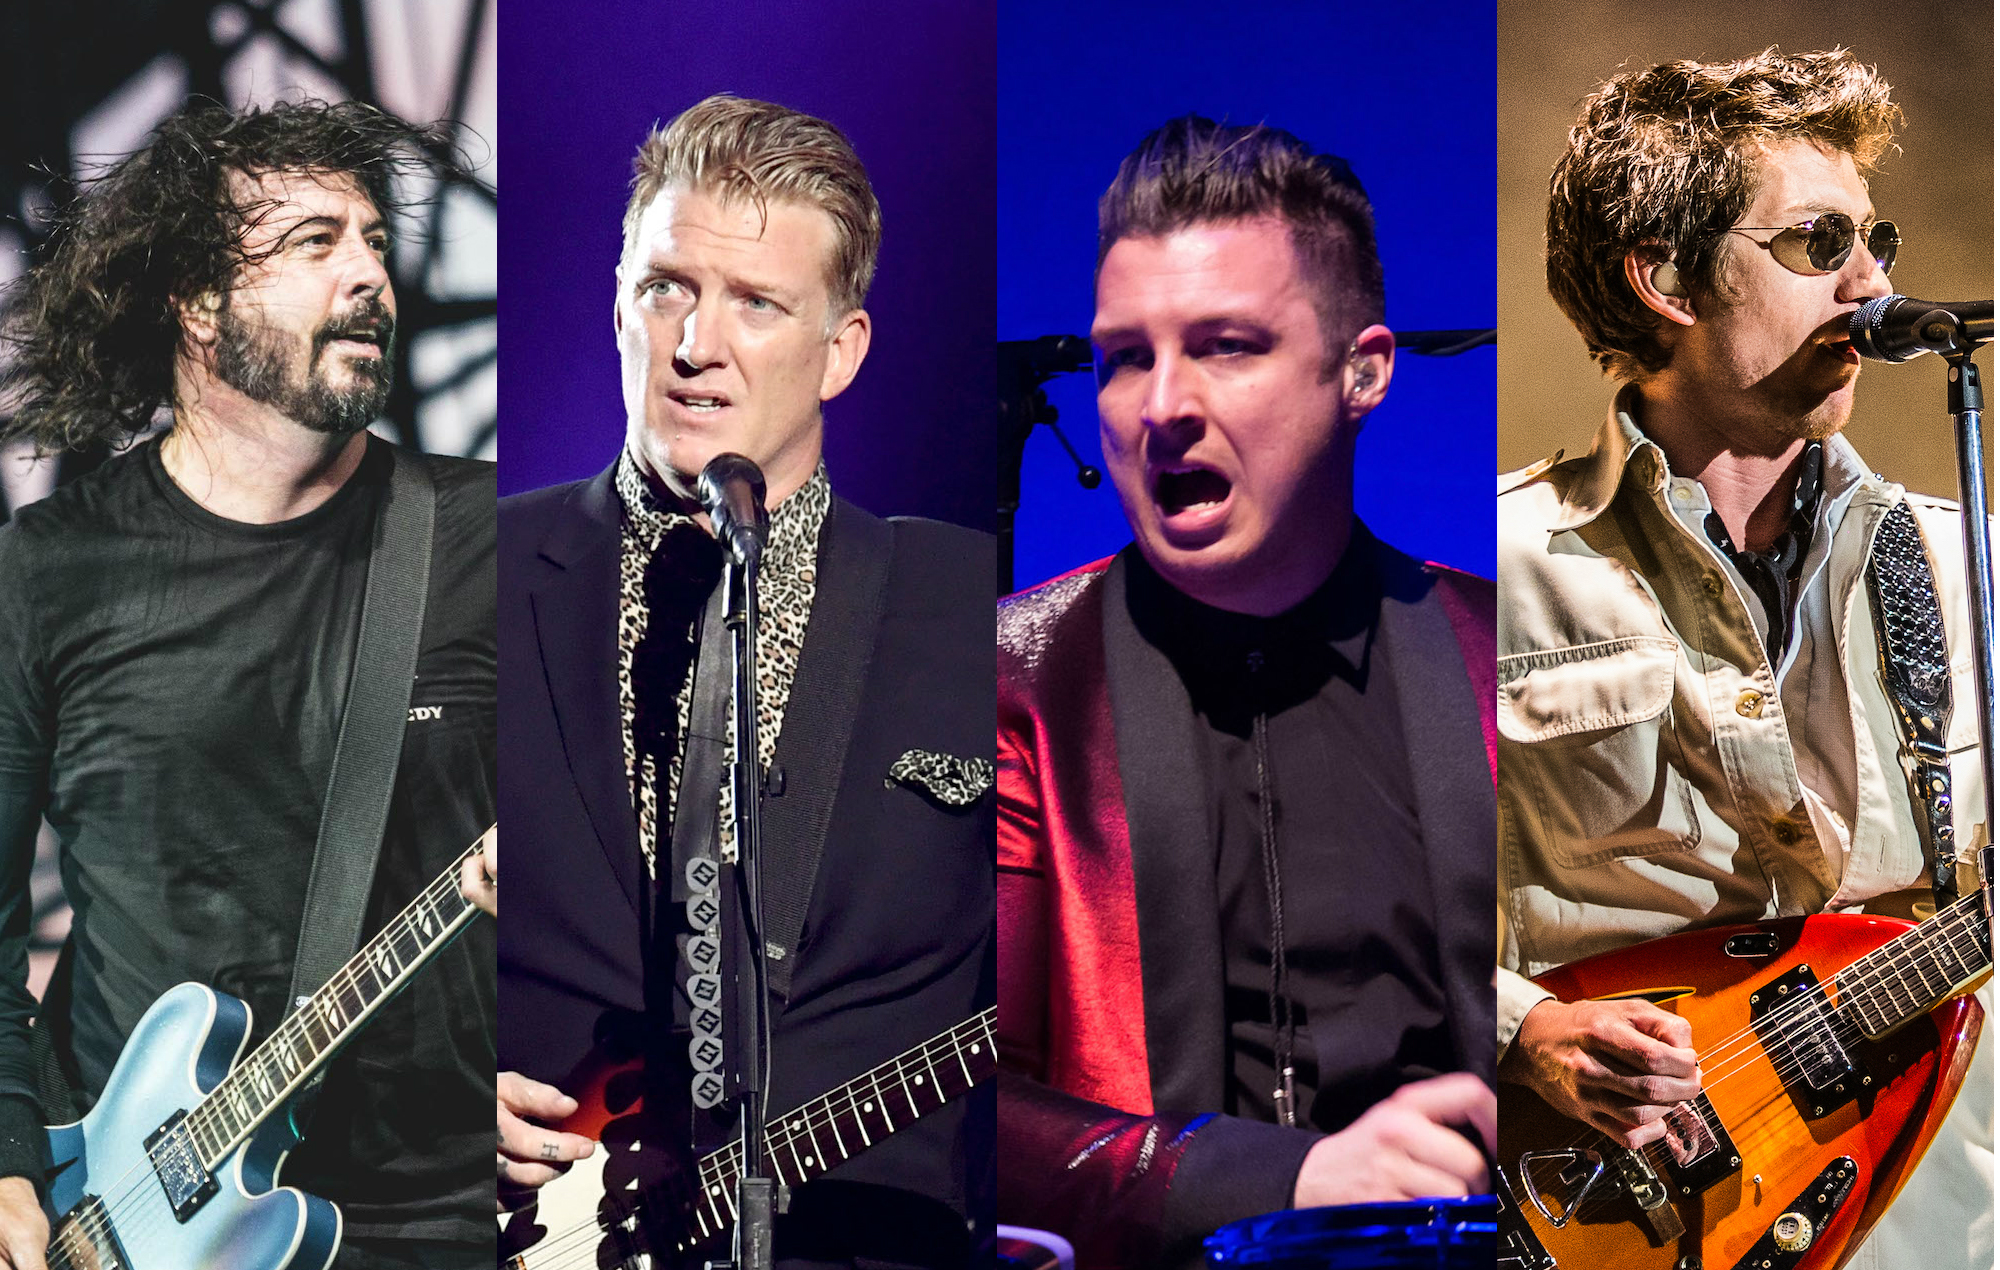 Dave Grohl Josh Homme Alex Turner And Matt Helders All